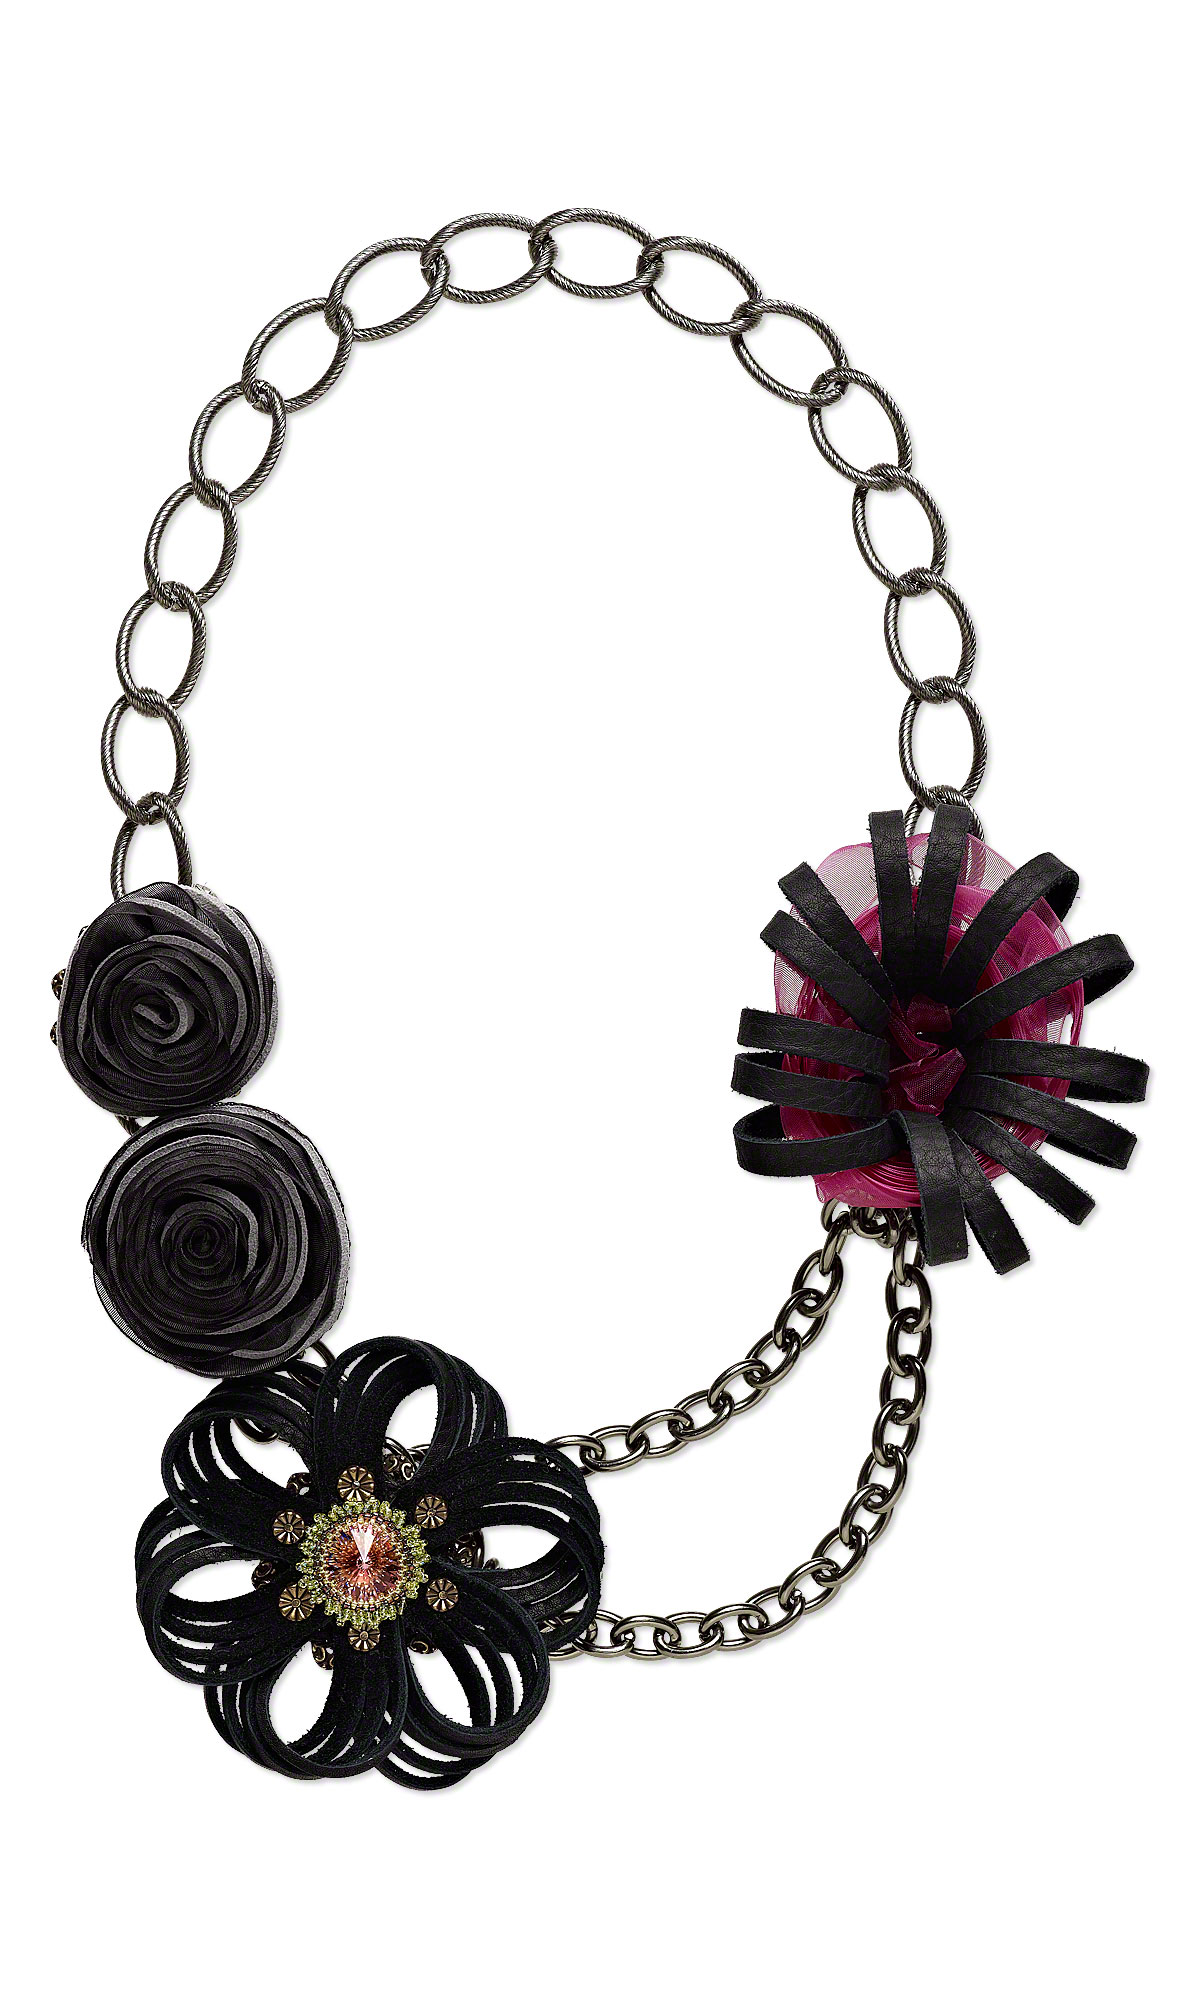 Jewelry Design - Double-Strand Necklace with Leather, Swarovski ...